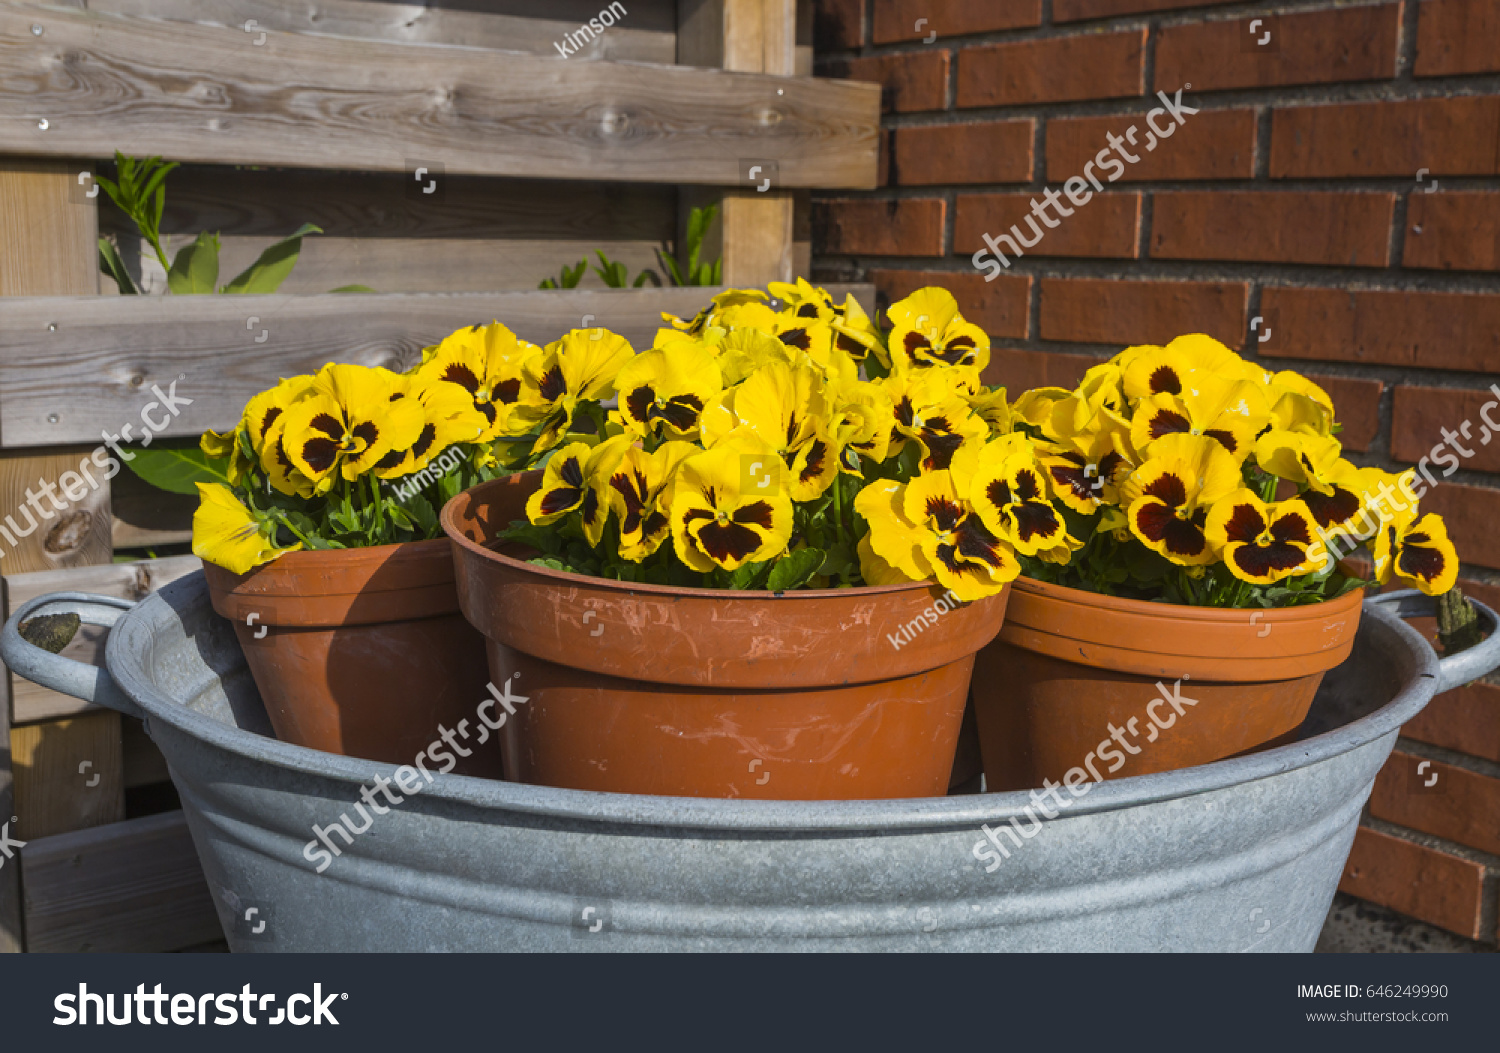 Bowl Four Pots Flowering Pansies Home Stock Photo (Royalty Free ...